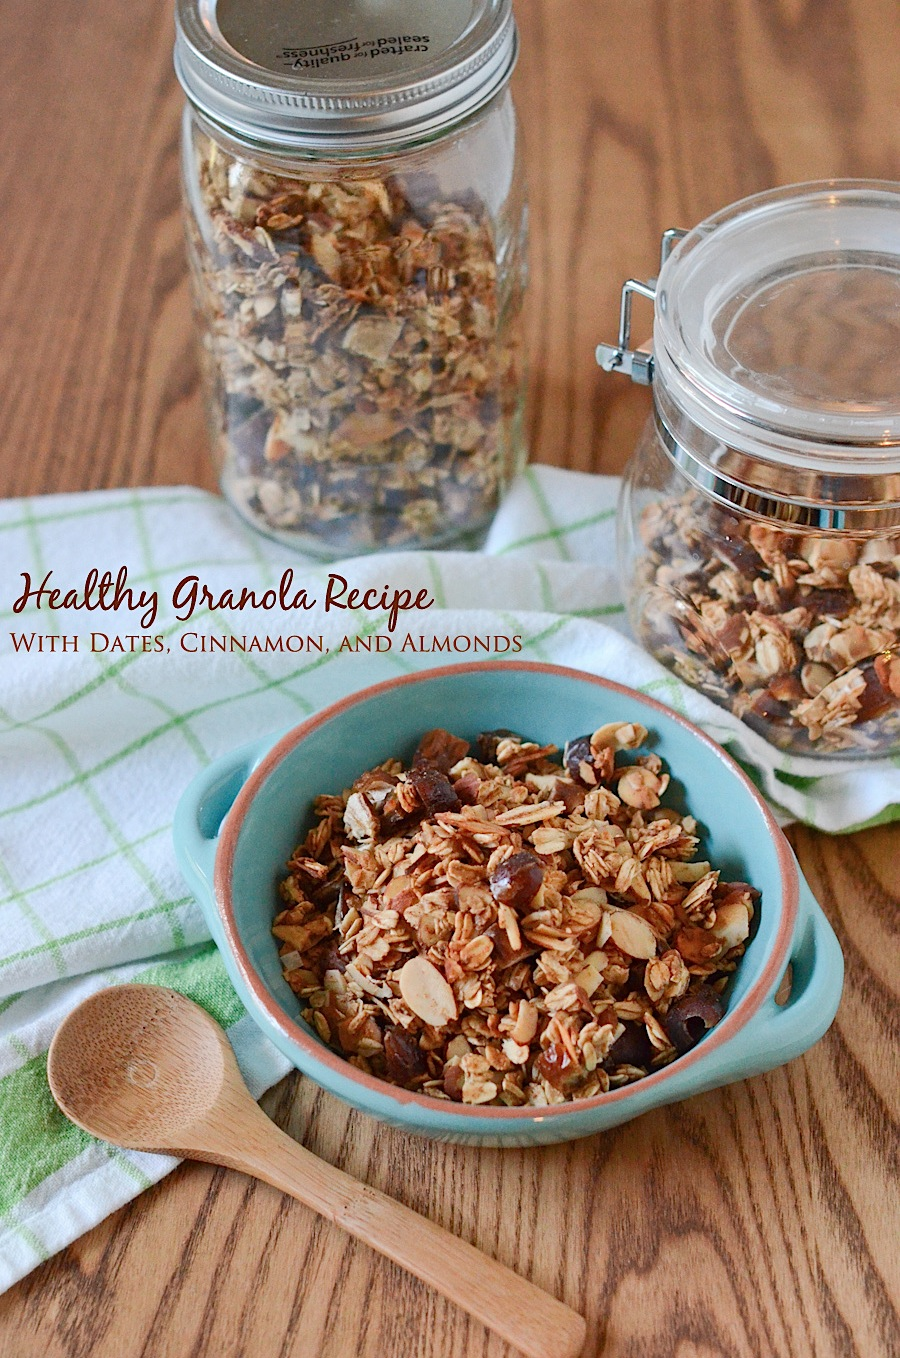 Healthy Granola Recipe: Maple Cinnamon Date Almond